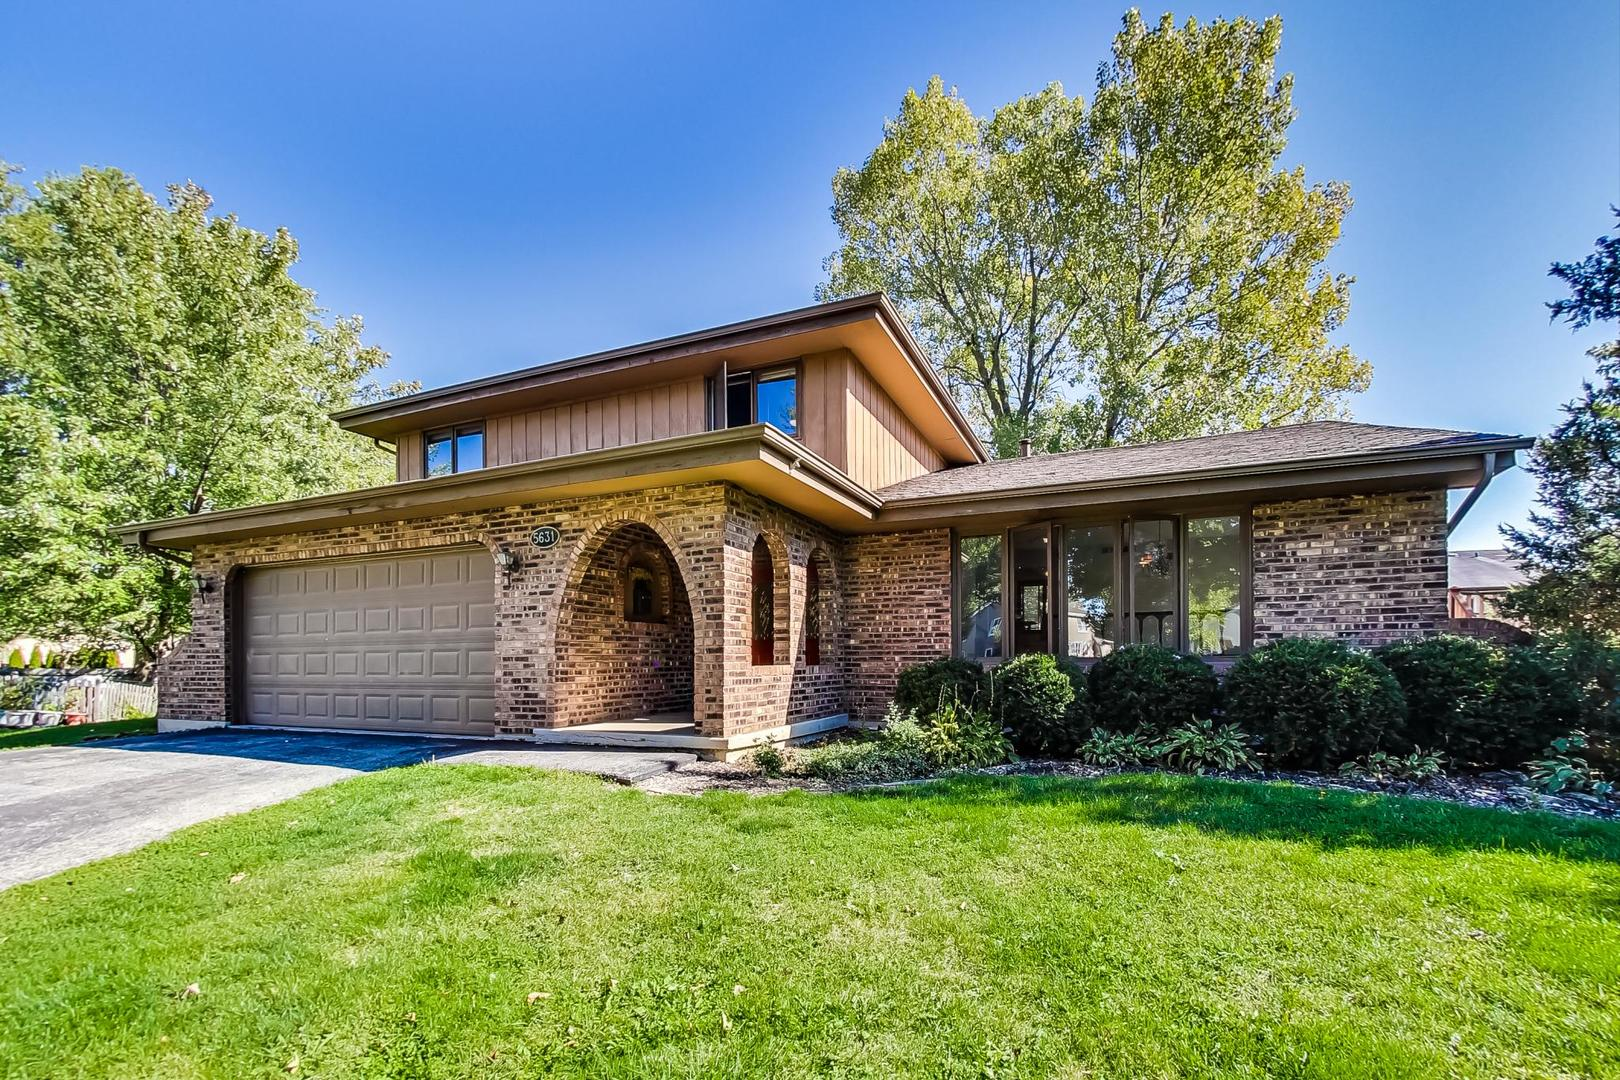 Photo for 5631 Harmarc Place, Downers Grove, IL 60516 (MLS # 10882239)